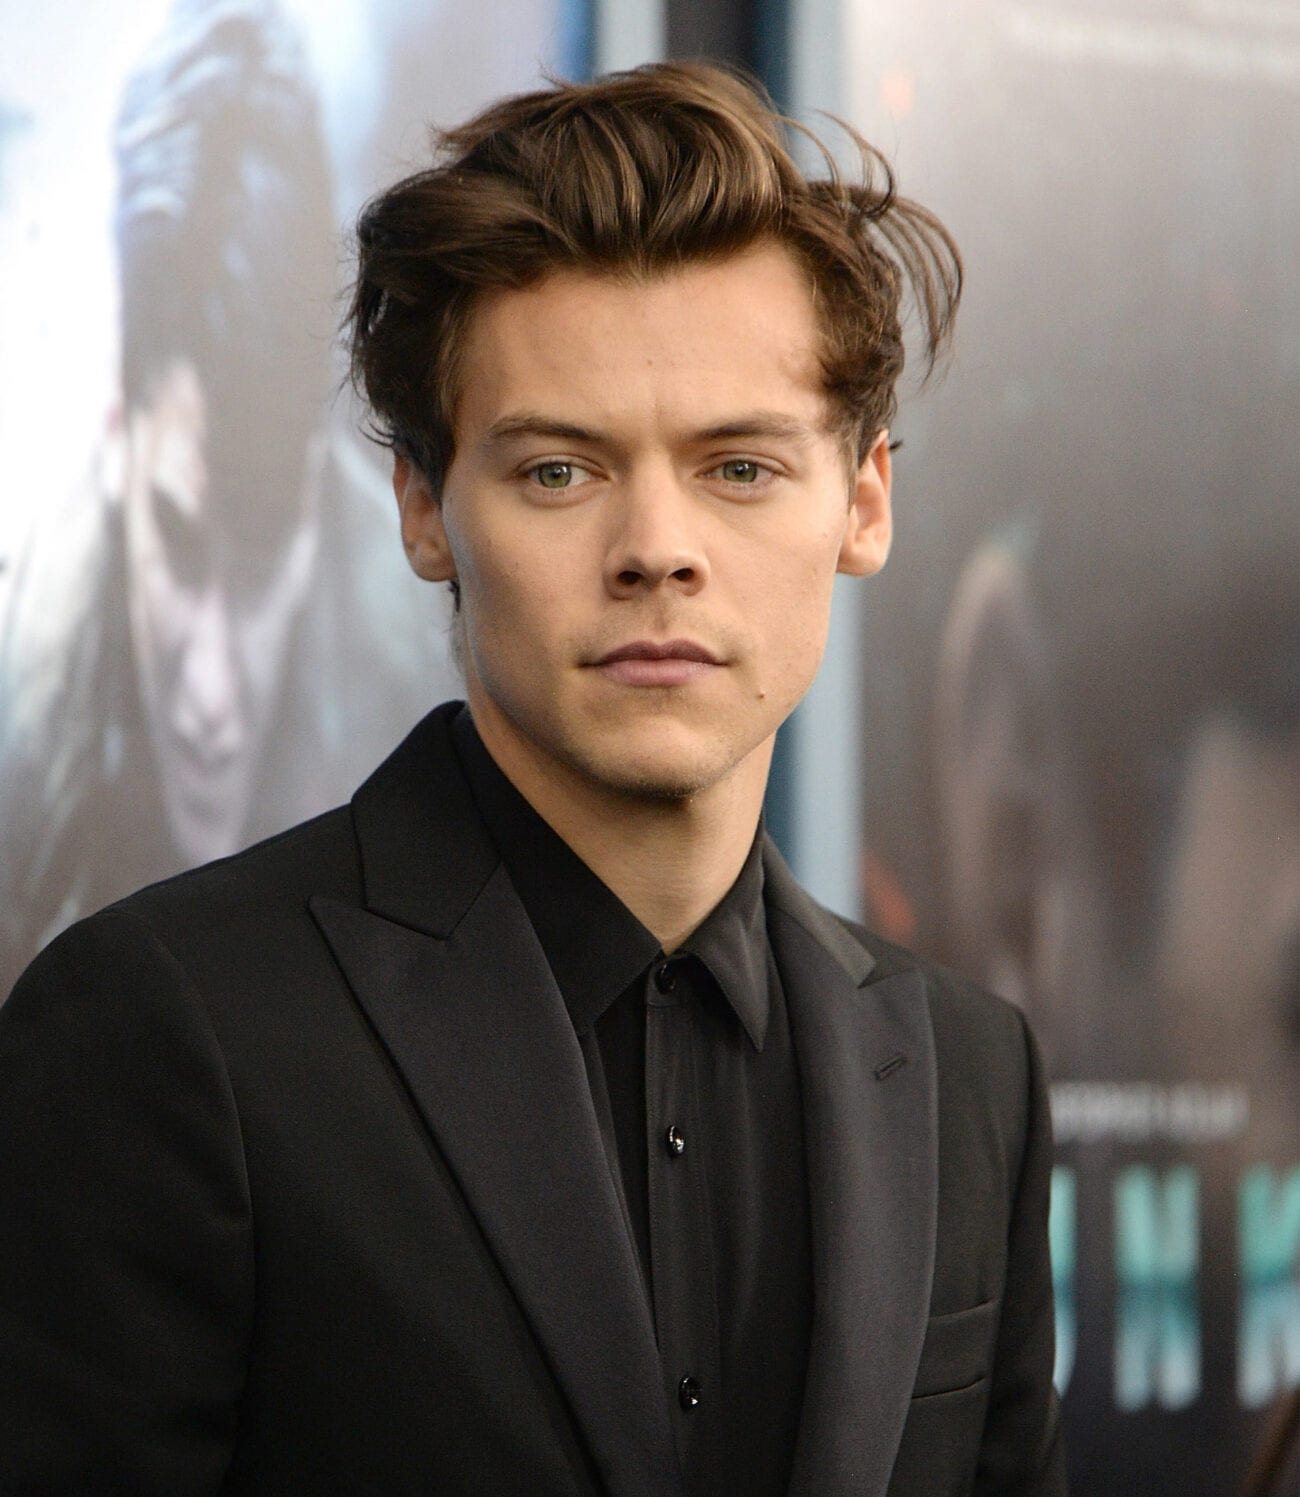 What's the latest Harry Styles drama? See these funny memes taking shots at the singer for not wearing a mask in public.